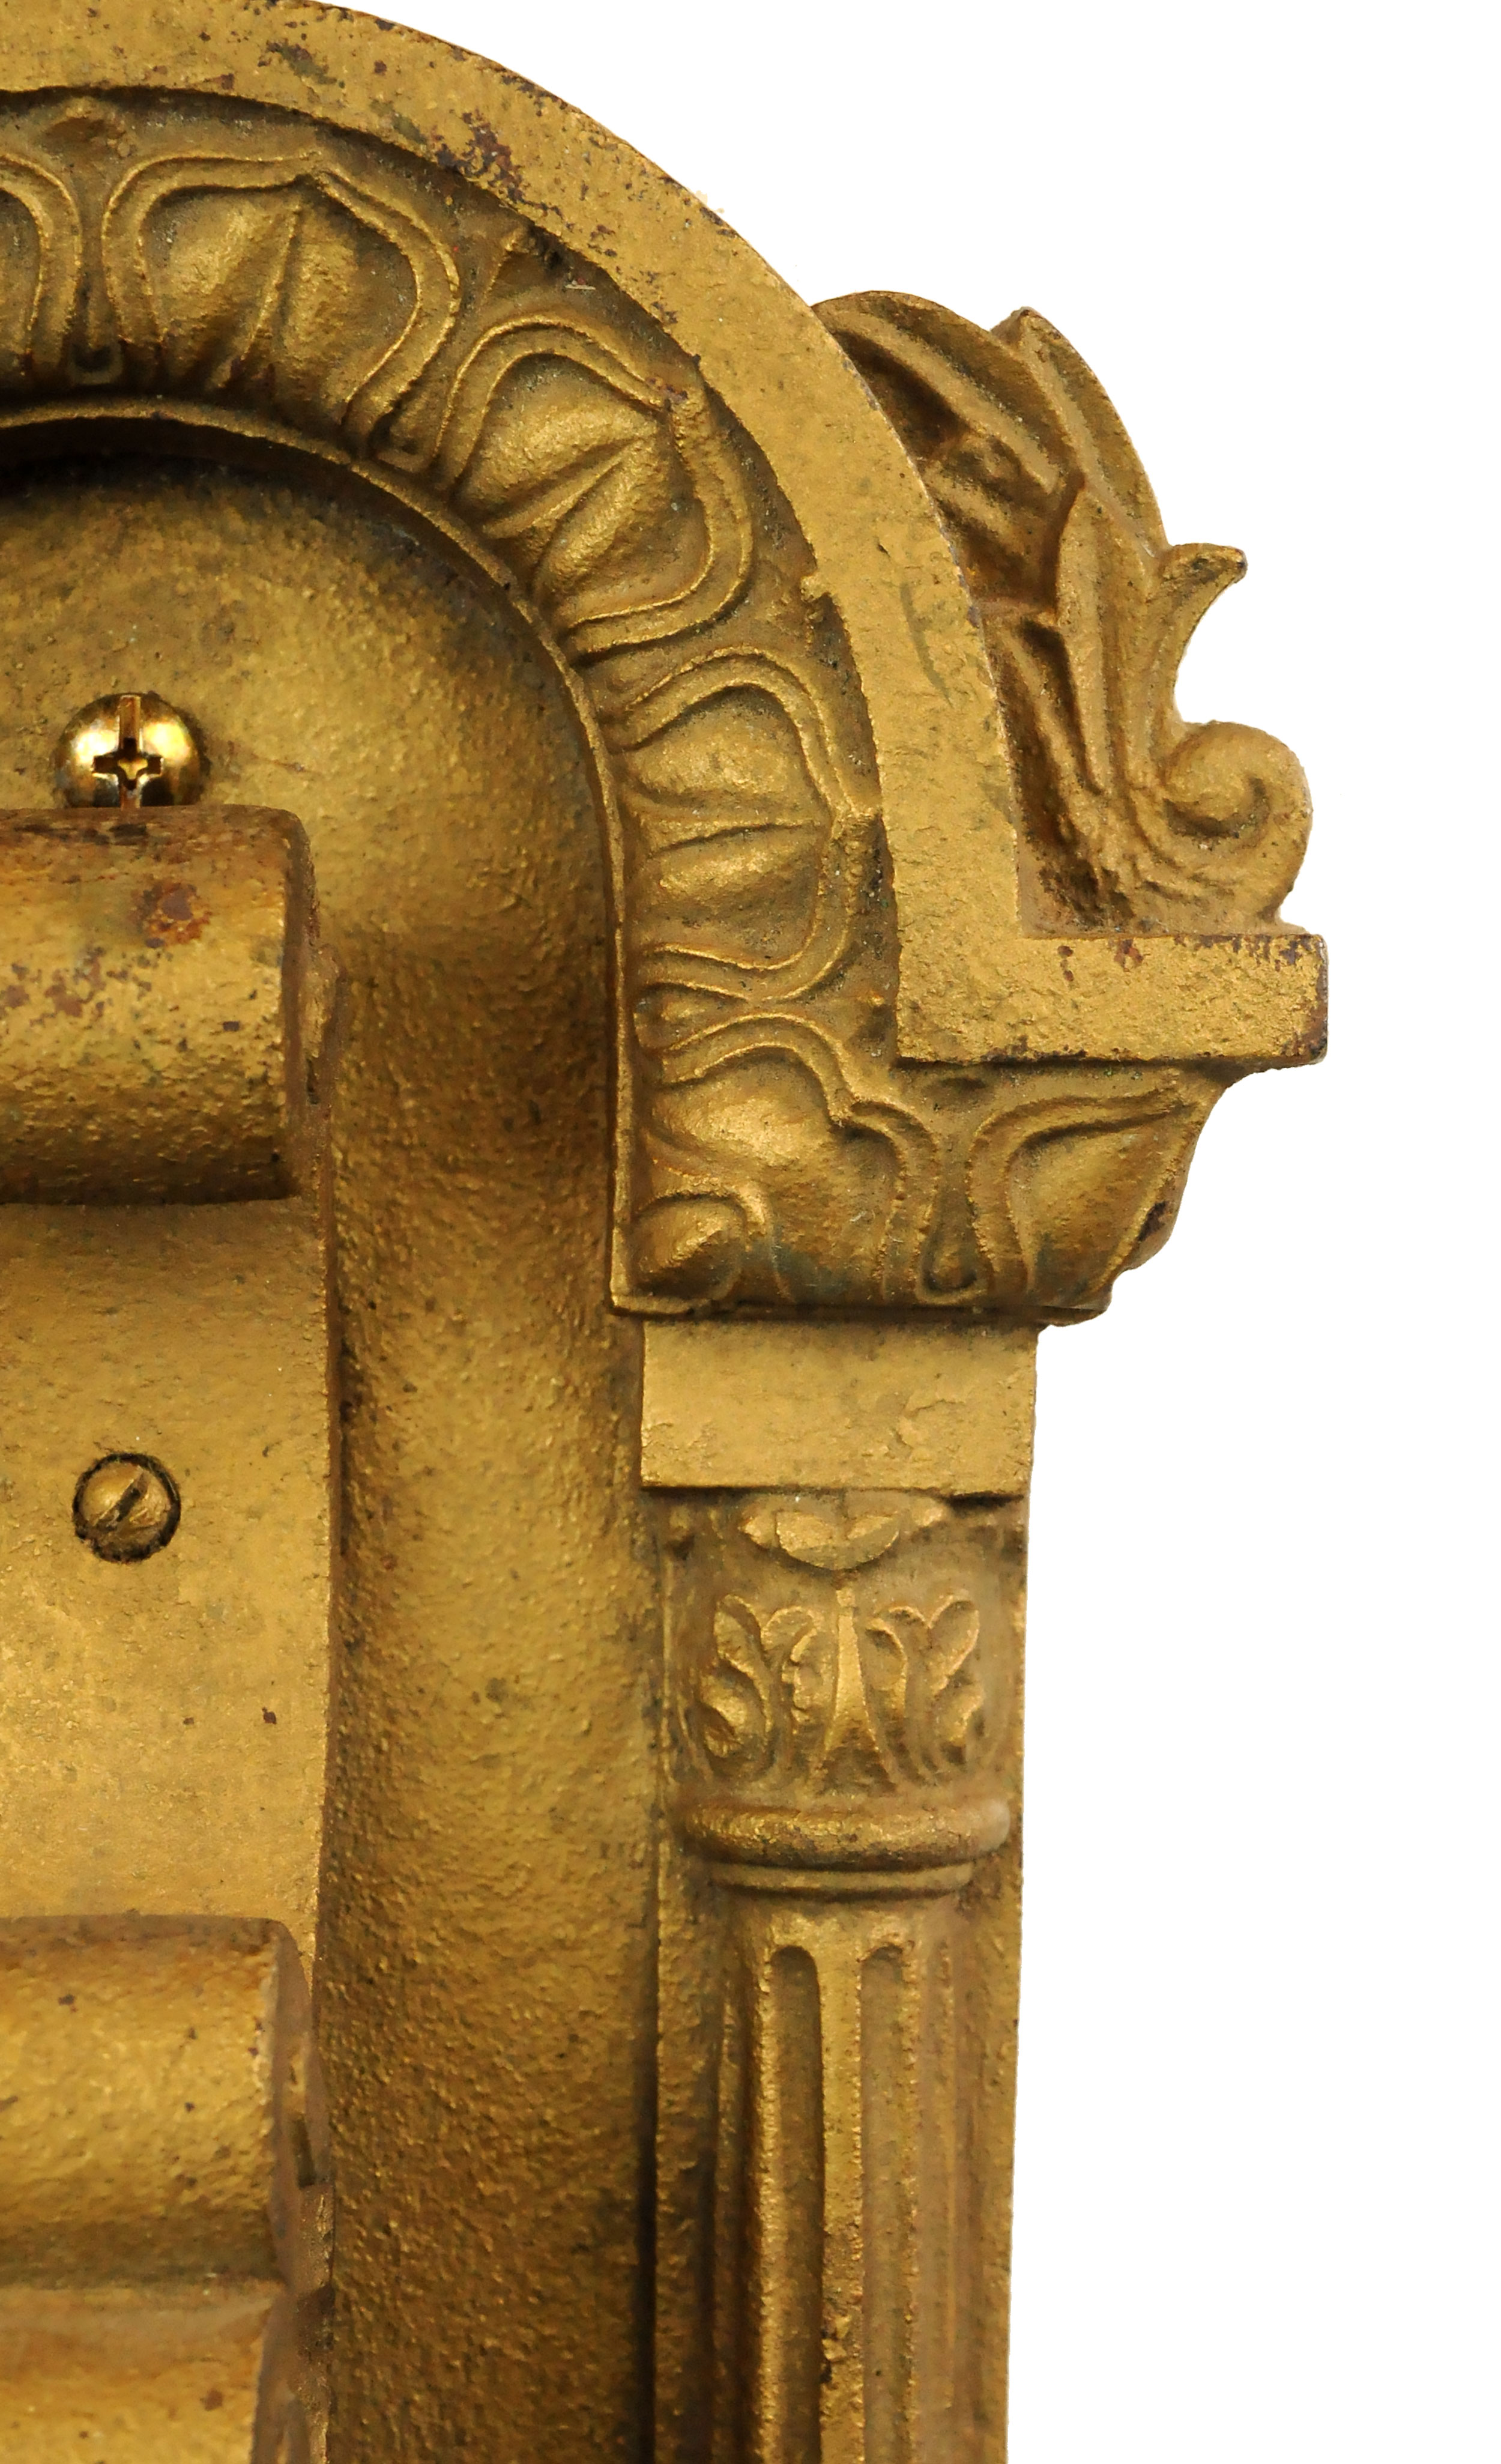 39679-heavy-cast-sconce-decorative-detail.jpg